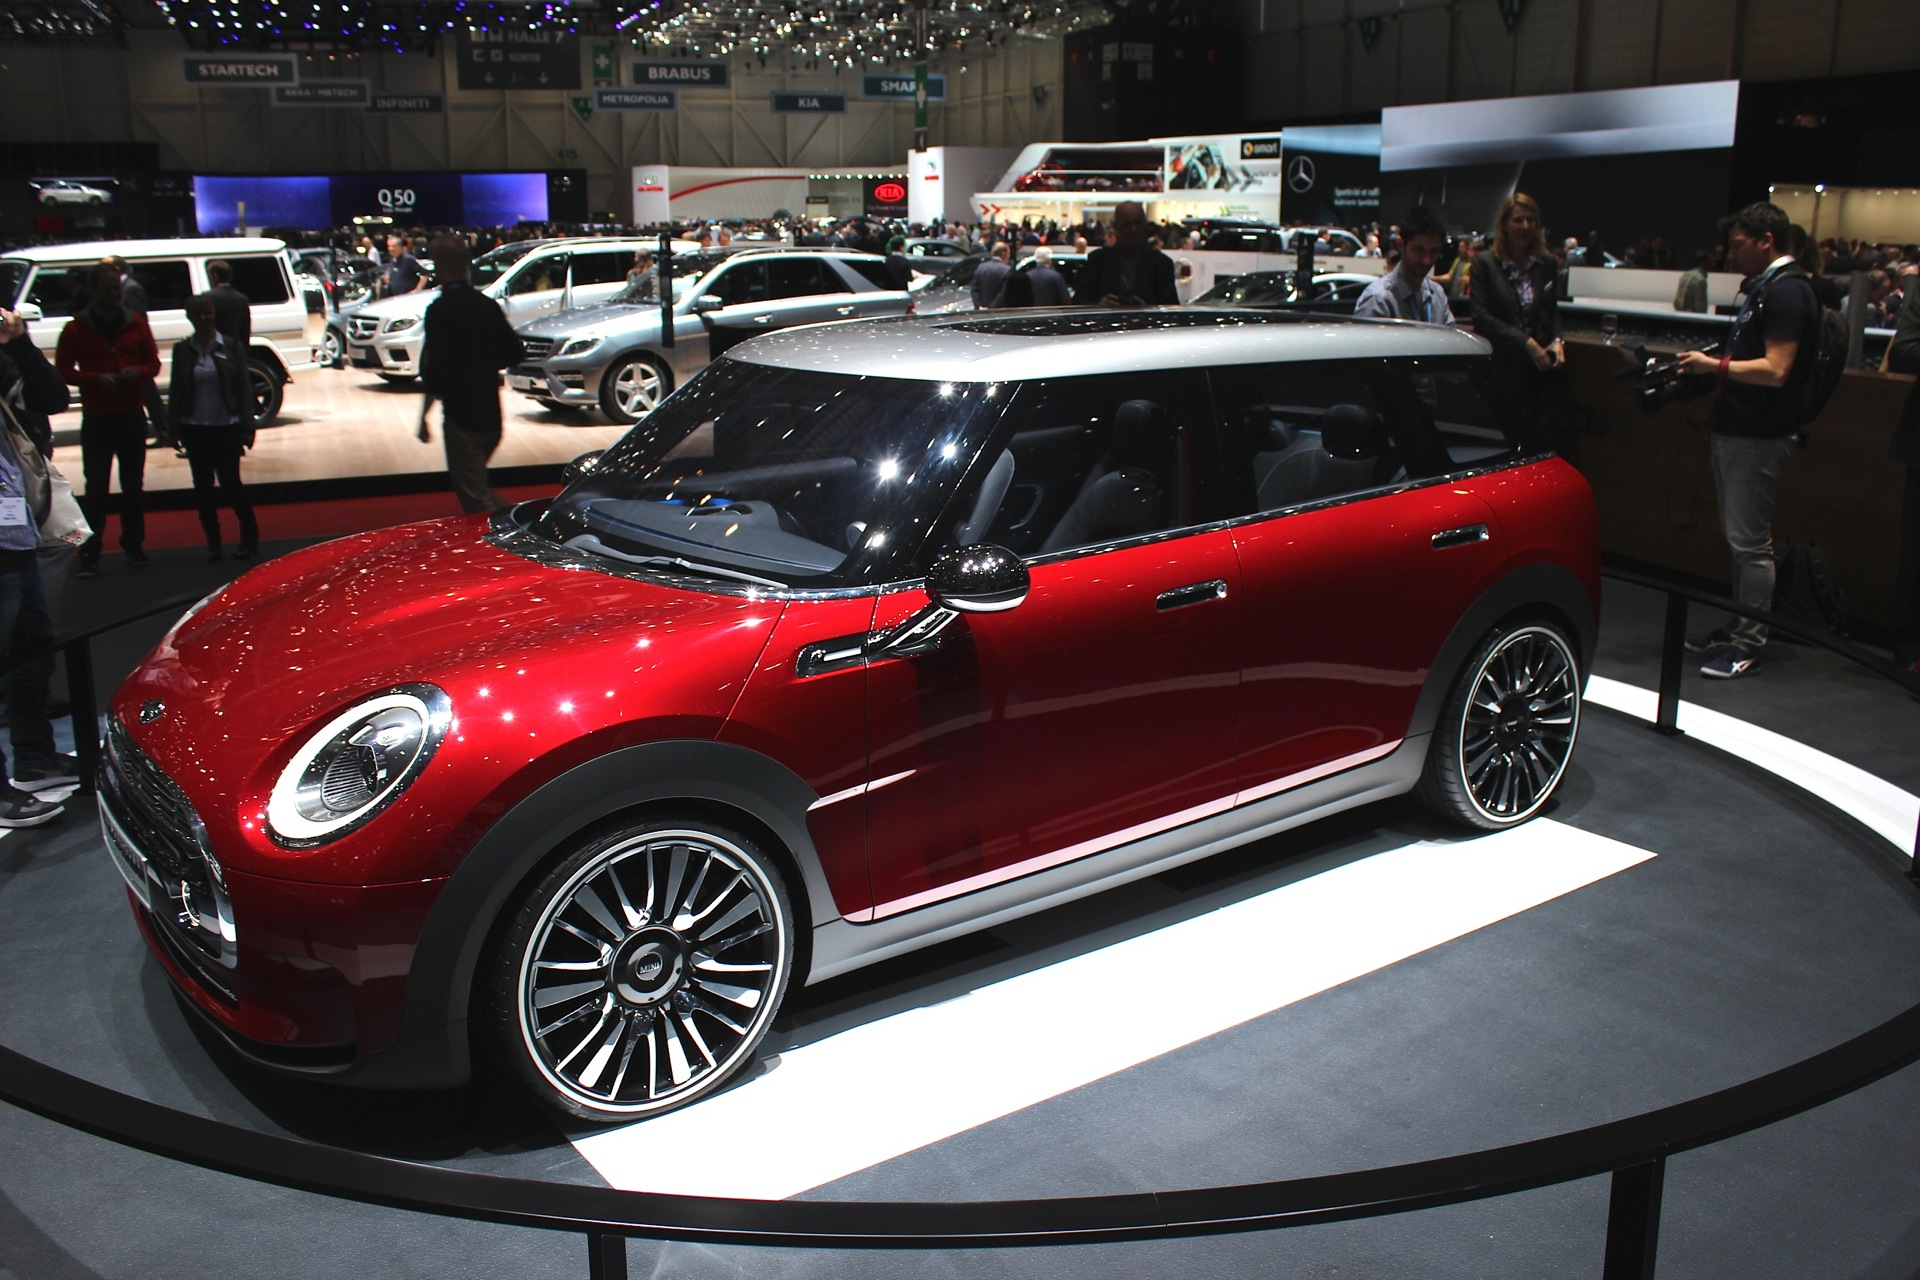 Mini clubman concept live photos from geneva motor show for What does a motor vehicle report show